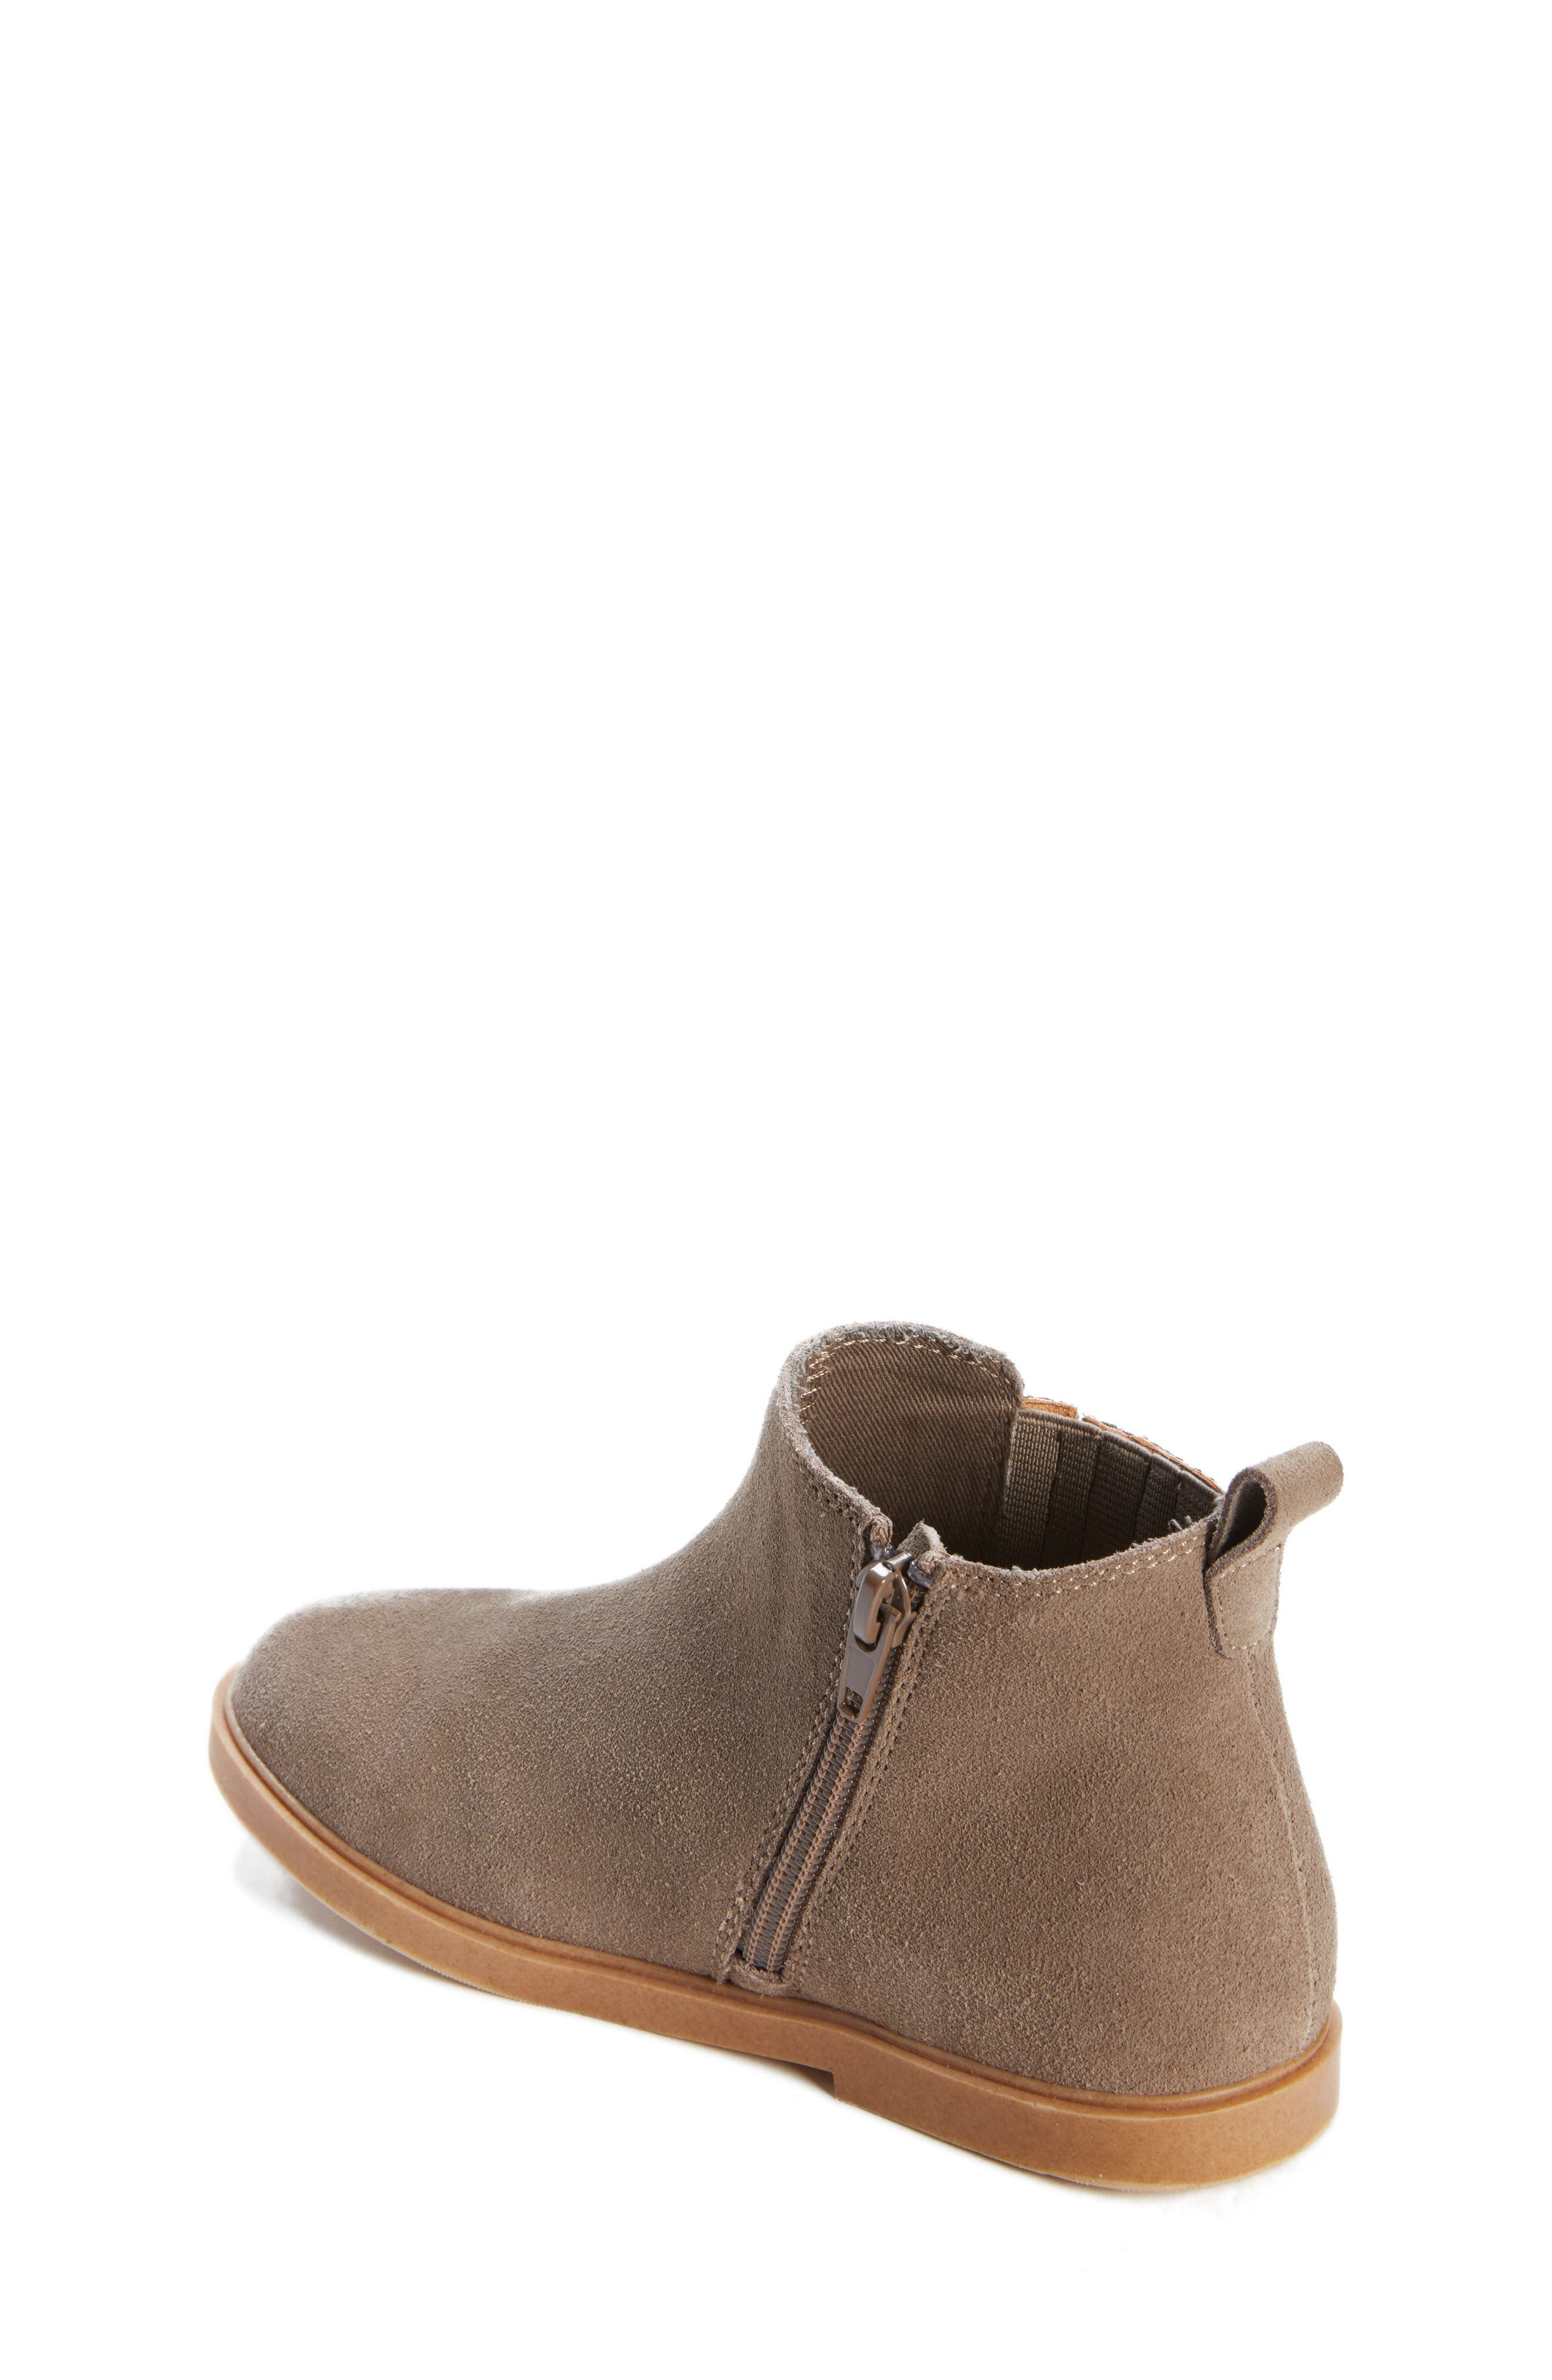 Alice Glitter Chelsea Boot,                             Alternate thumbnail 2, color,                             GREY SUEDE